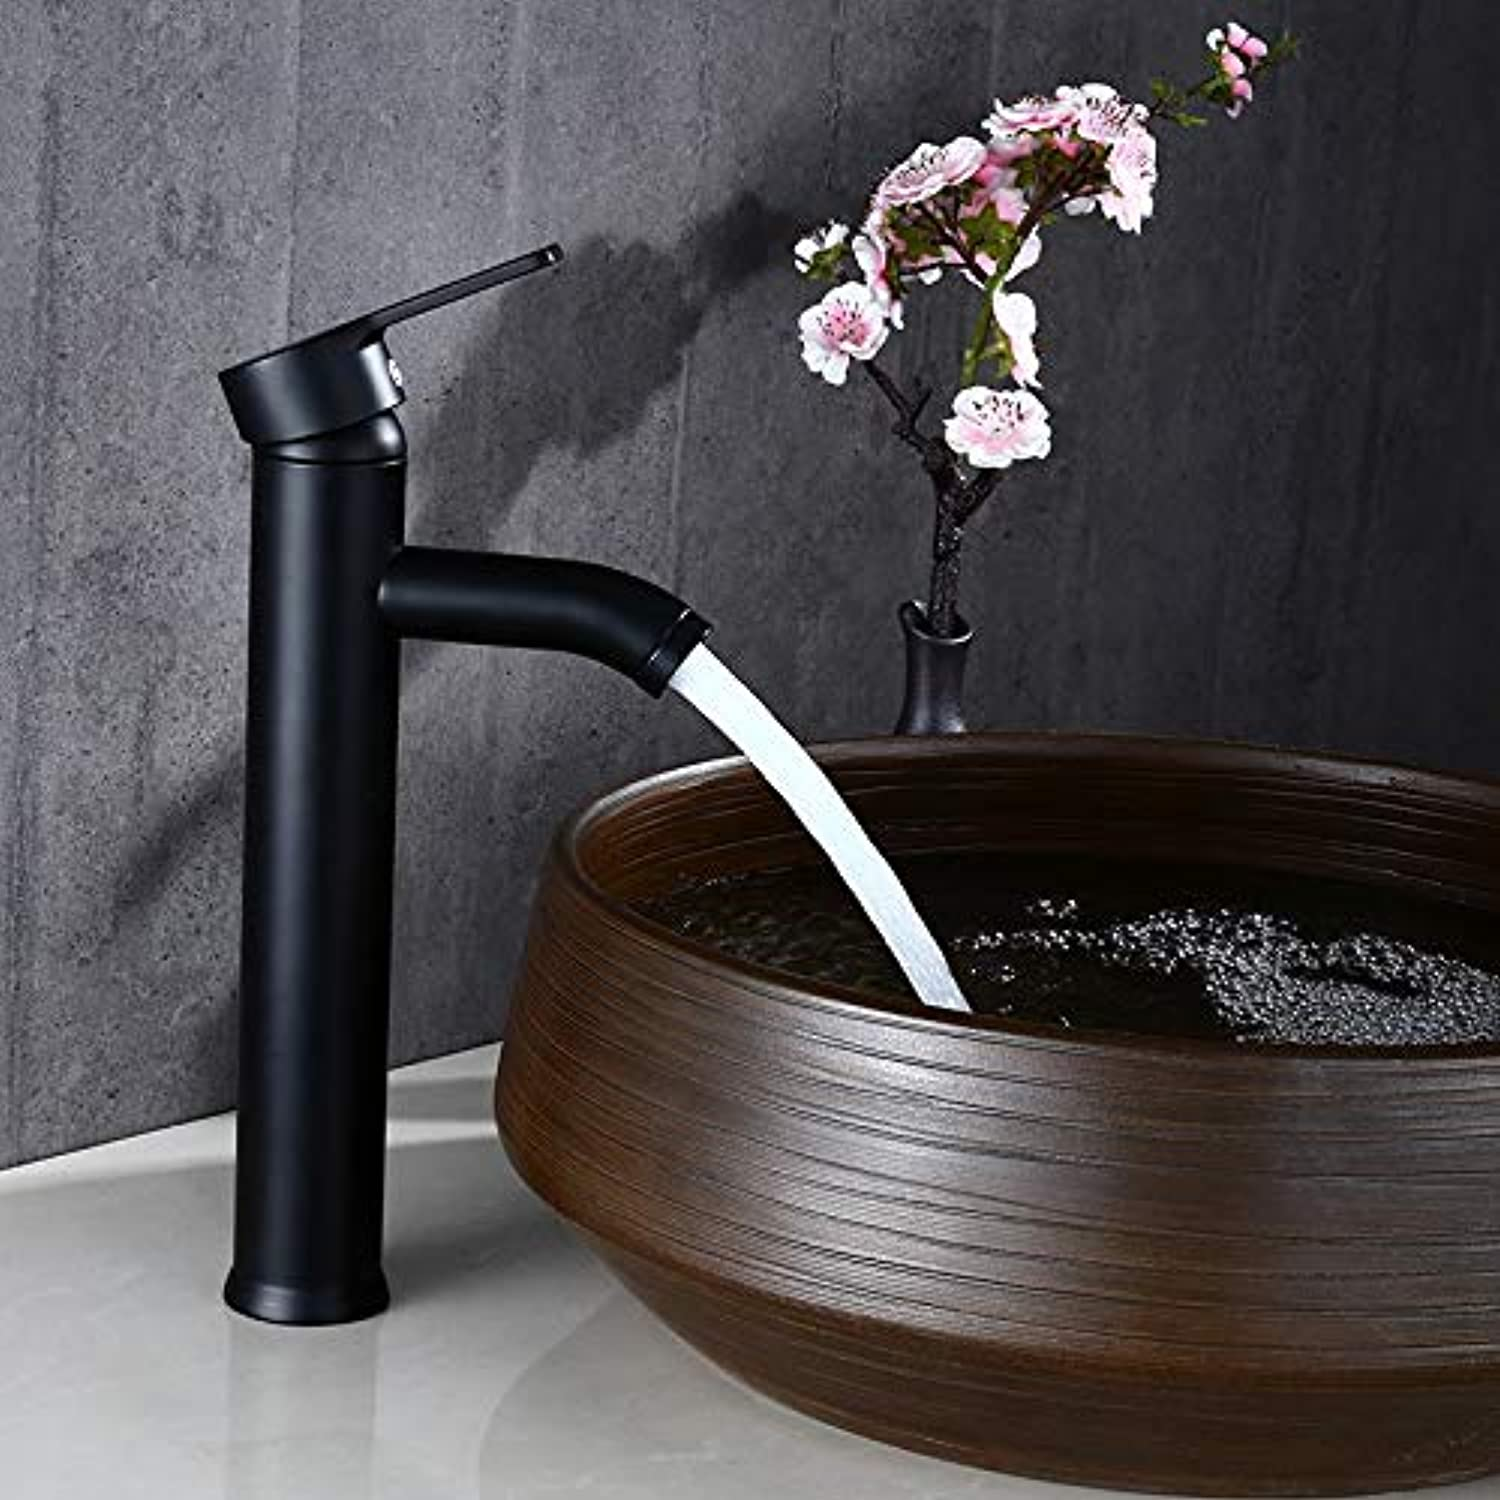 Above Counter Basin Faucet Hot and Cold Water Bathroom Cabinet Faucet Sink Mixed Water Wash Basin Black Dragon